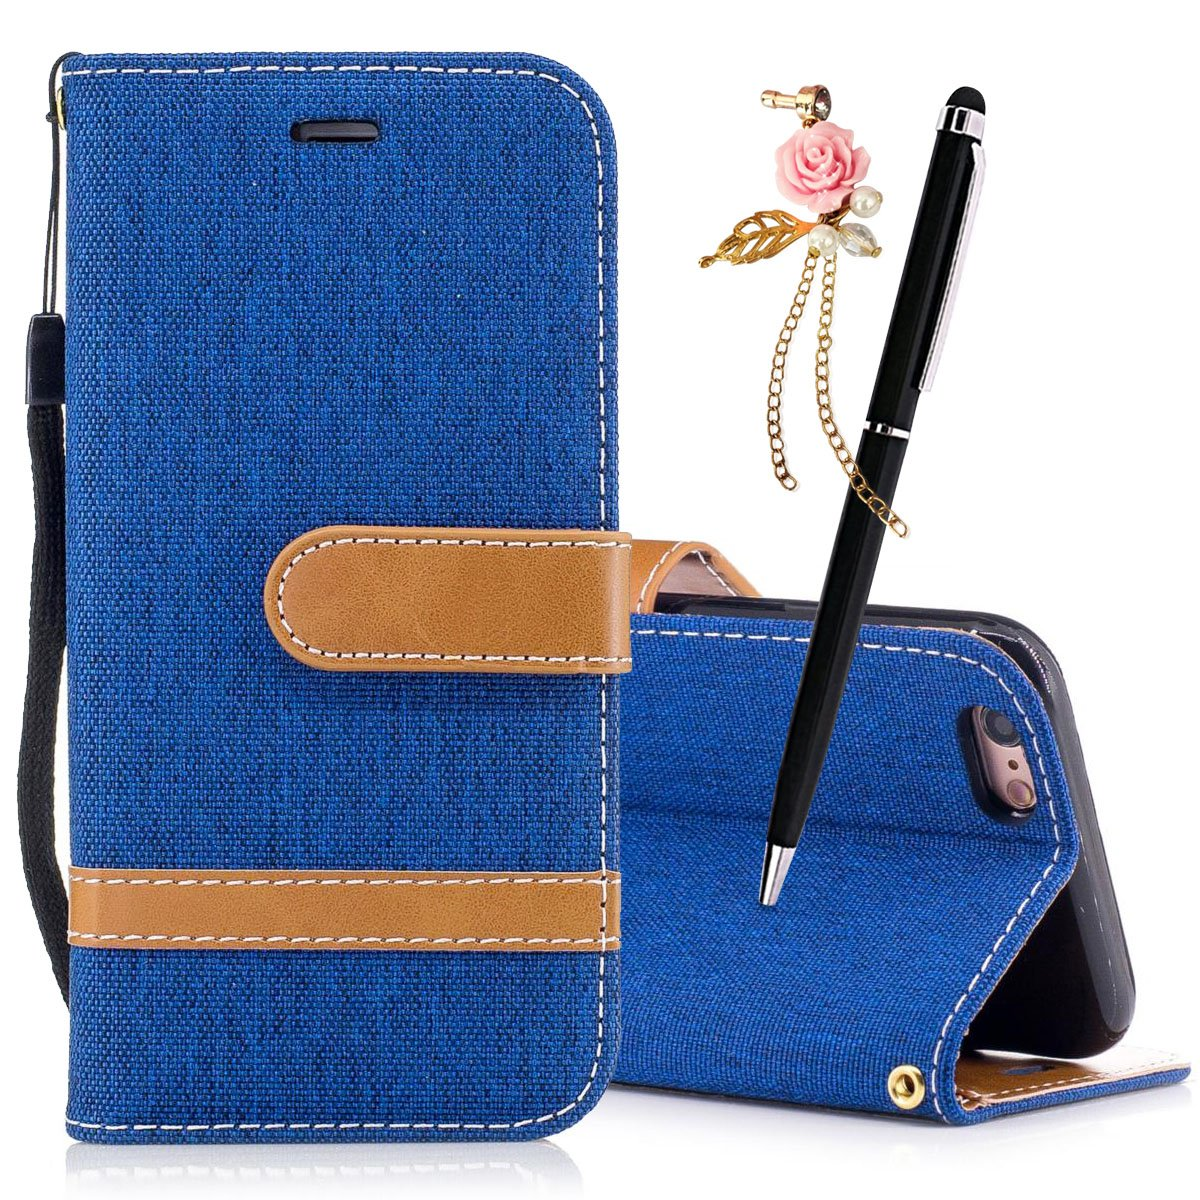 MEETER Coque PU Cuir pour iPhone 6 Plus / iphone 6S Plus Etui Pochette Portable Flip Wallet Housse Mode Bookstyle Case Porte Carte Cas Back Cover Souple Fonction Stand Spécial Magnetique Dustproof Protective Fente de Carte - Rouge